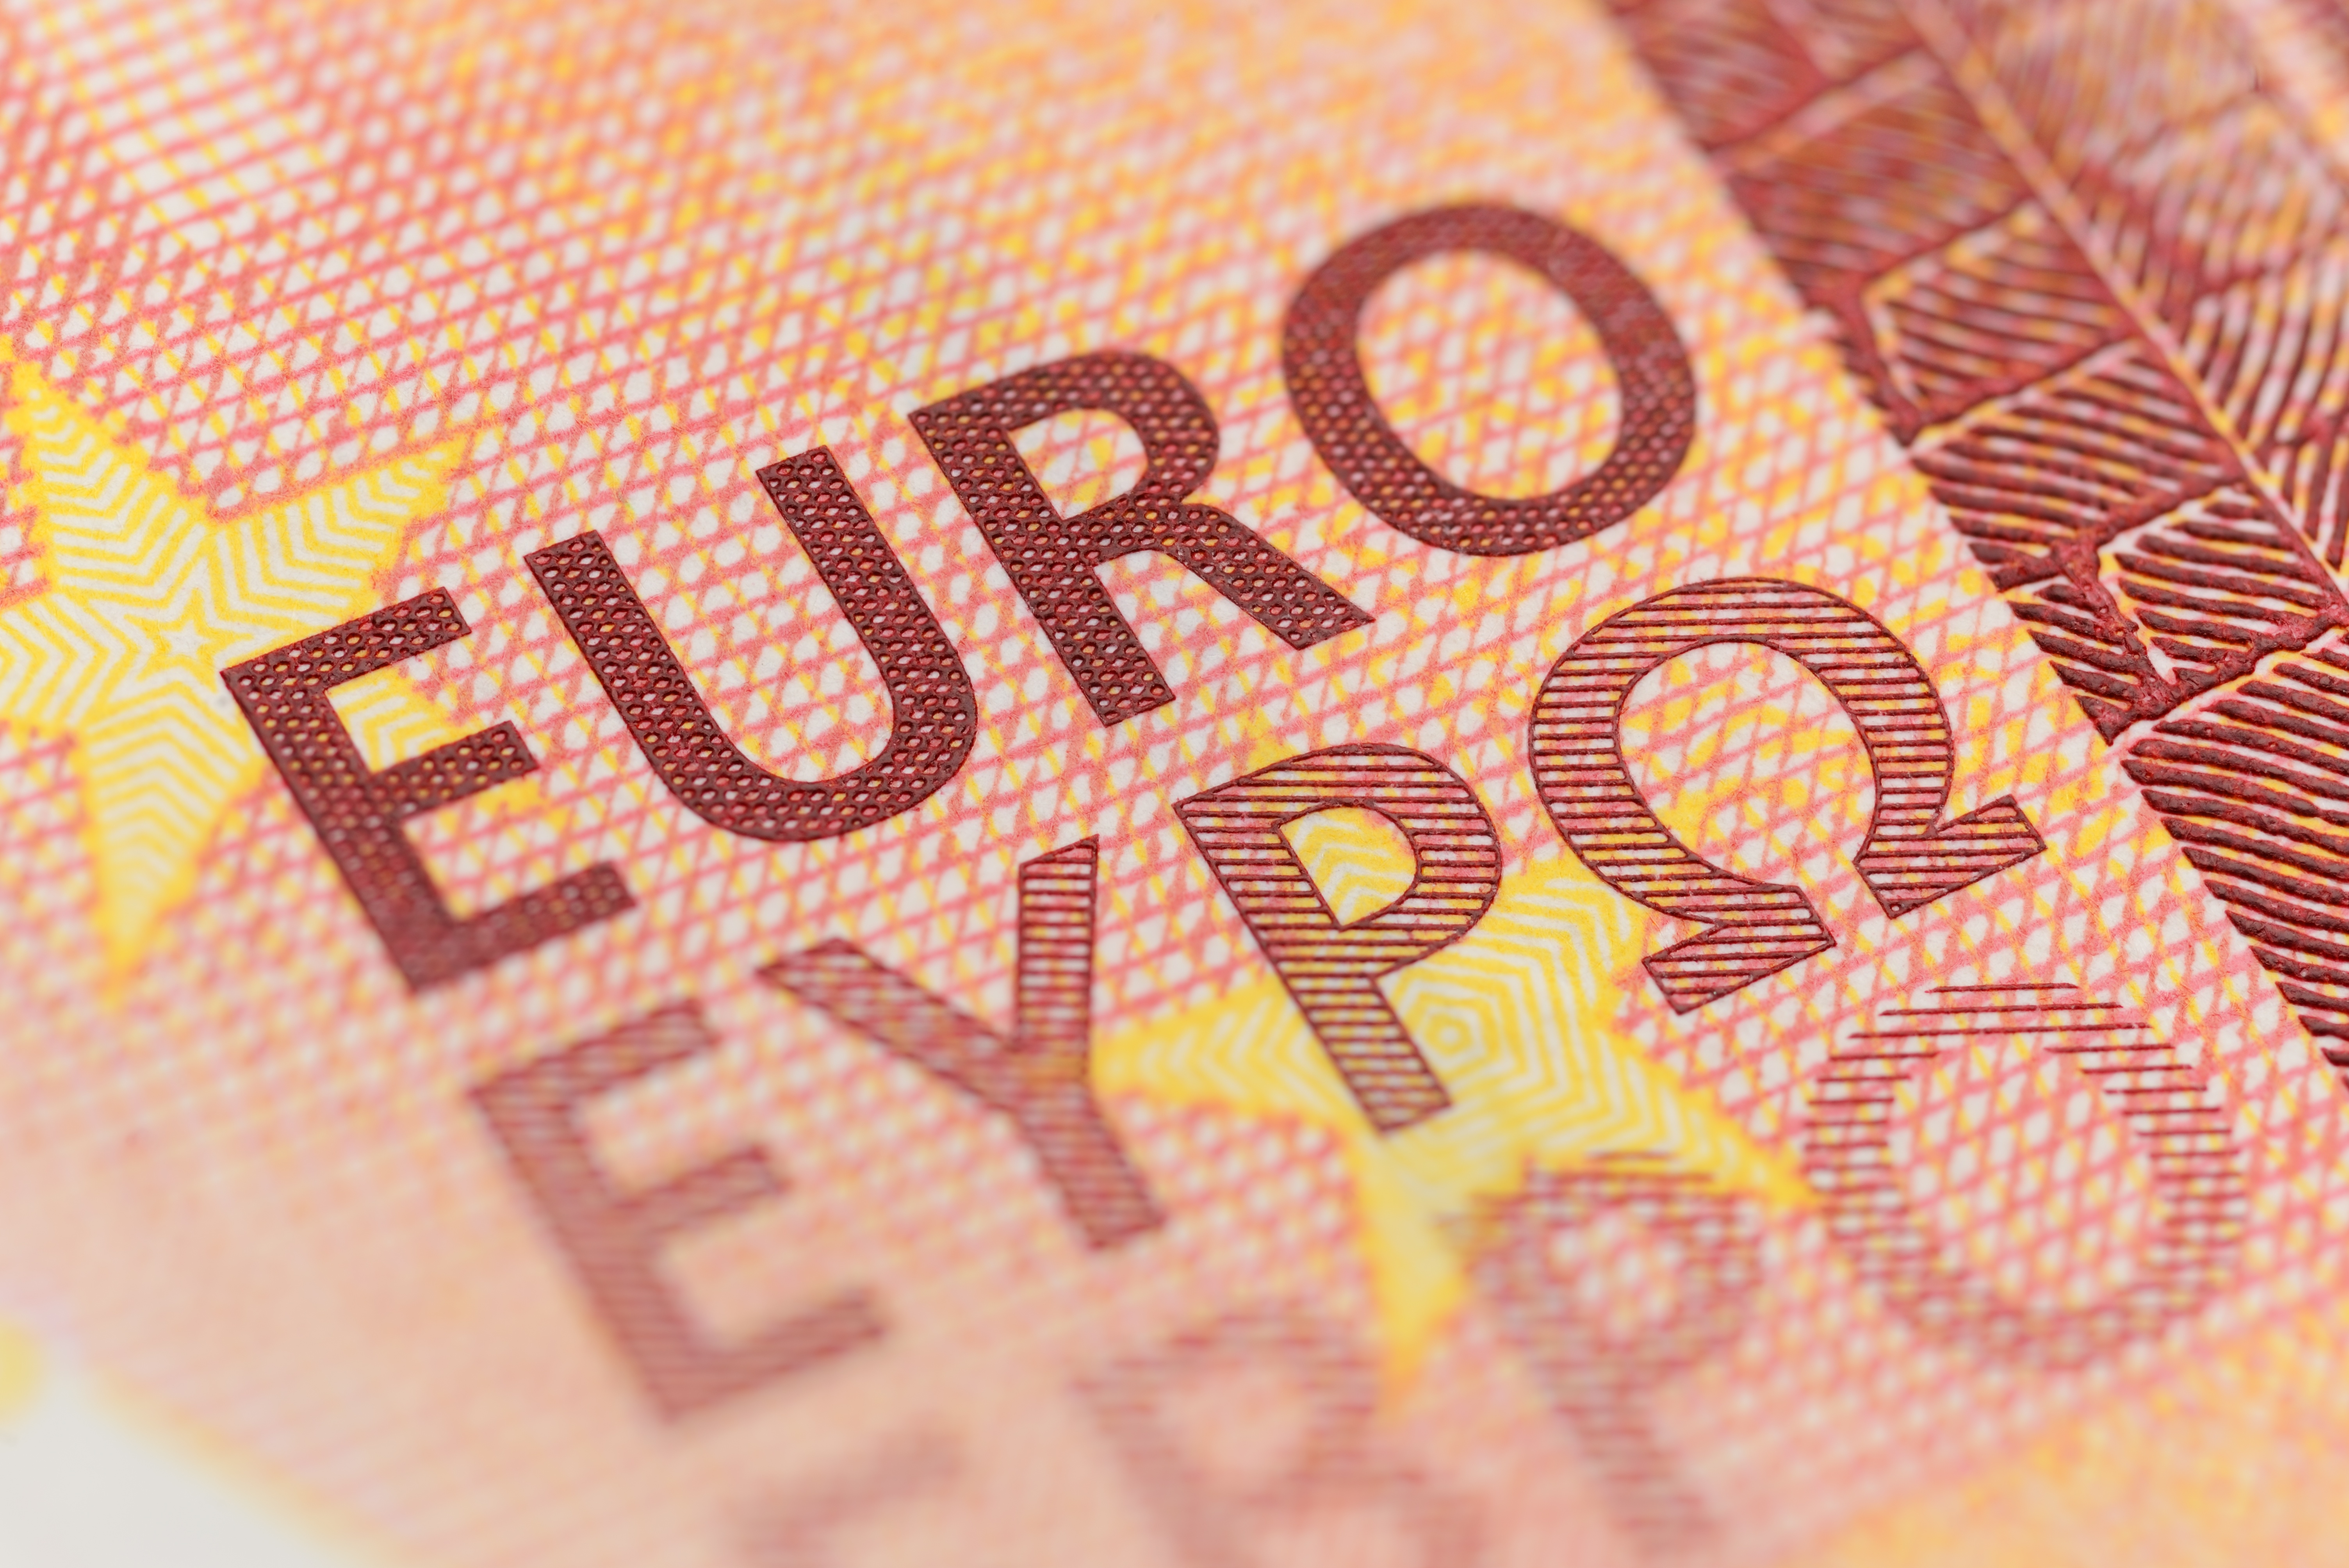 euro-currency-macro-shot-PL8PWHY